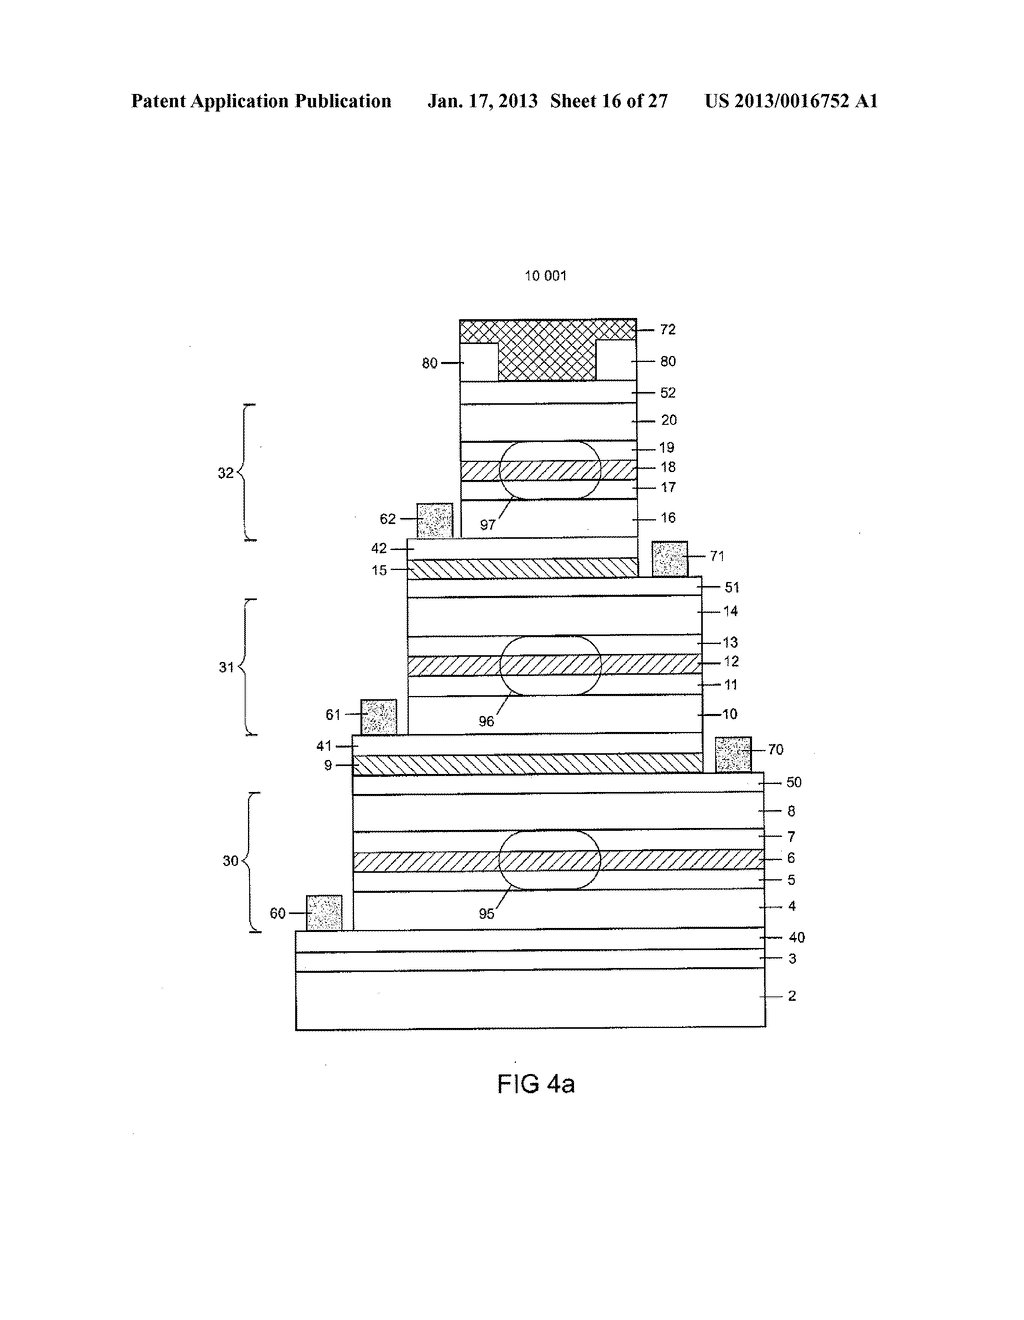 Laser Diode Assembly and Method for Producing a Laser Diode AssemblyAANM Lell; AlfredAACI Maxhutte-HaidhofAACO DEAAGP Lell; Alfred Maxhutte-Haidhof DEAANM Straussburg; MartinAACI DonaustaufAACO DEAAGP Straussburg; Martin Donaustauf DE - diagram, schematic, and image 17